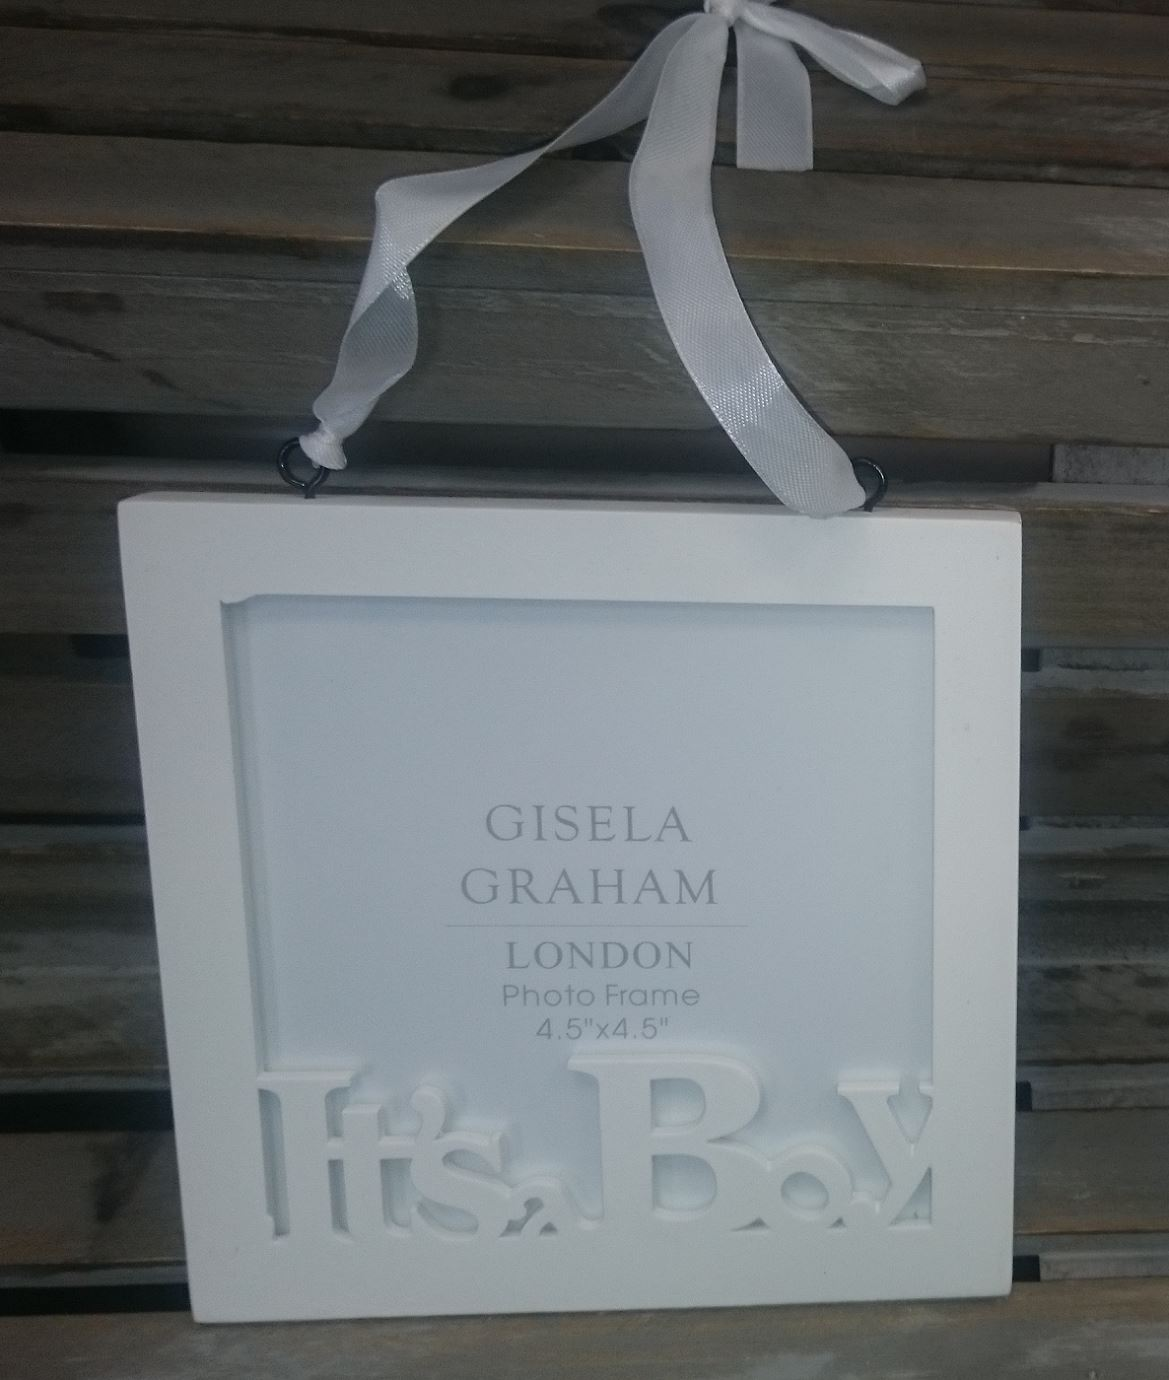 GISELA GRAHAM ITS A BOY GIRL WOODEN PICTURE PHOTO FRAME BABY SHOWER ...